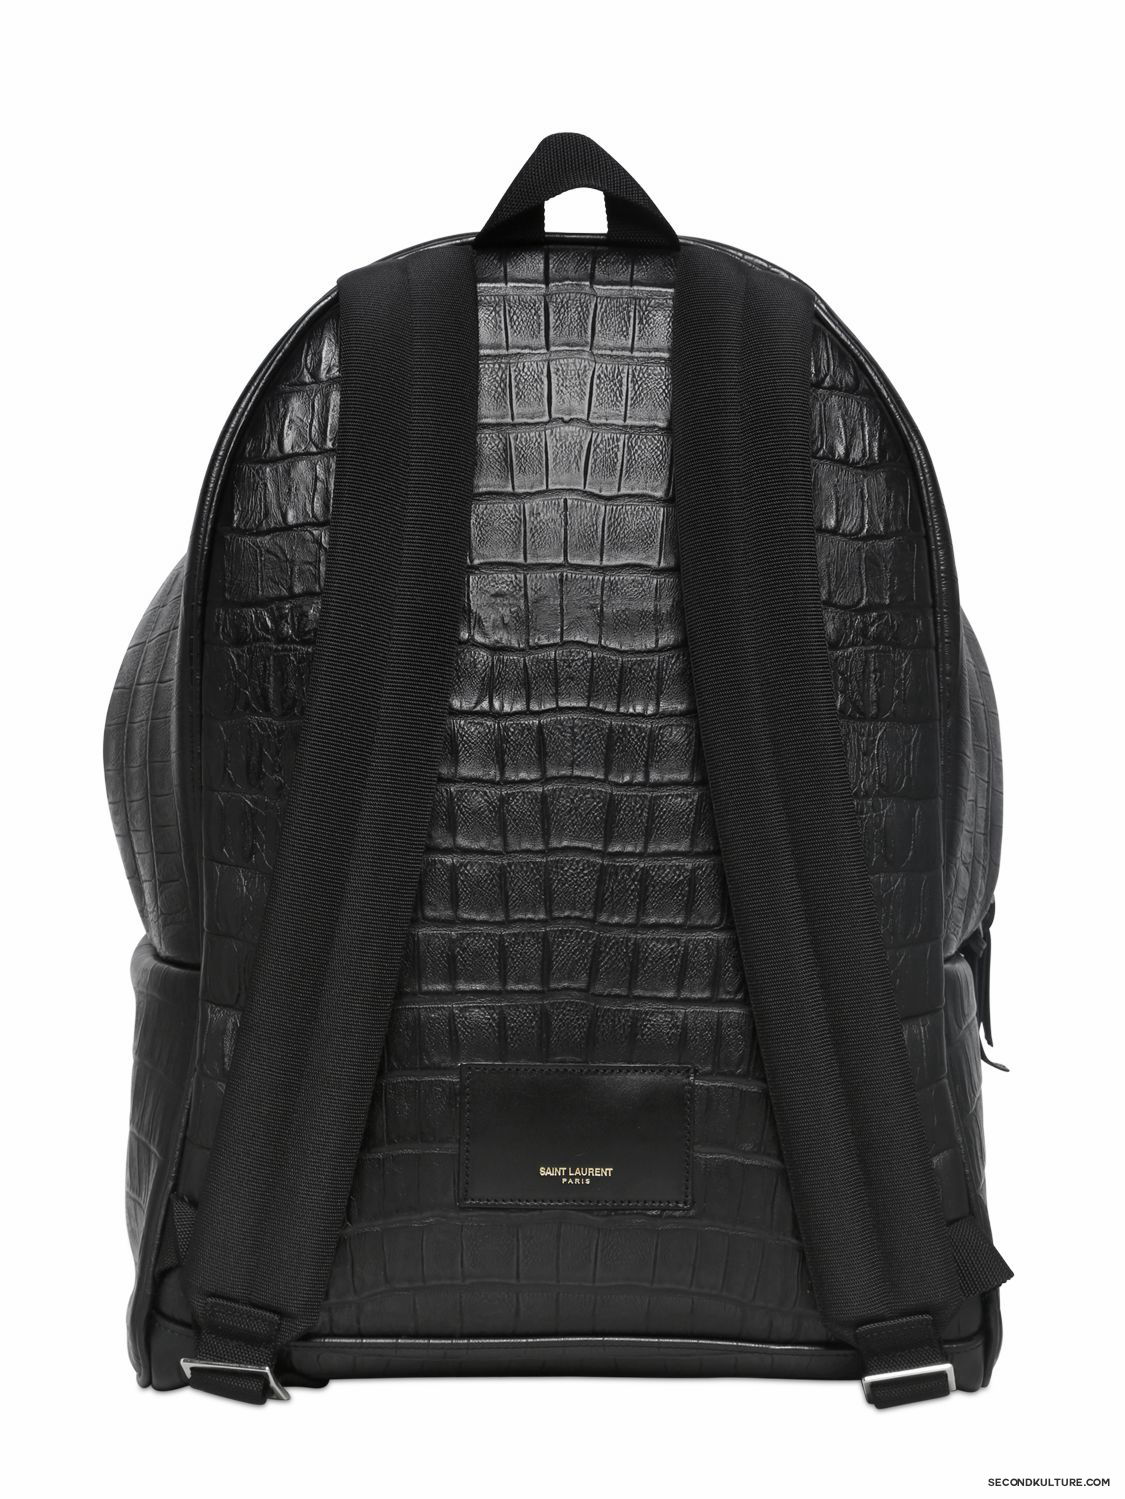 Saint-Laurent-Black-Croc-Embossed-Leather-Backpack-Fall-Winter-2015-2